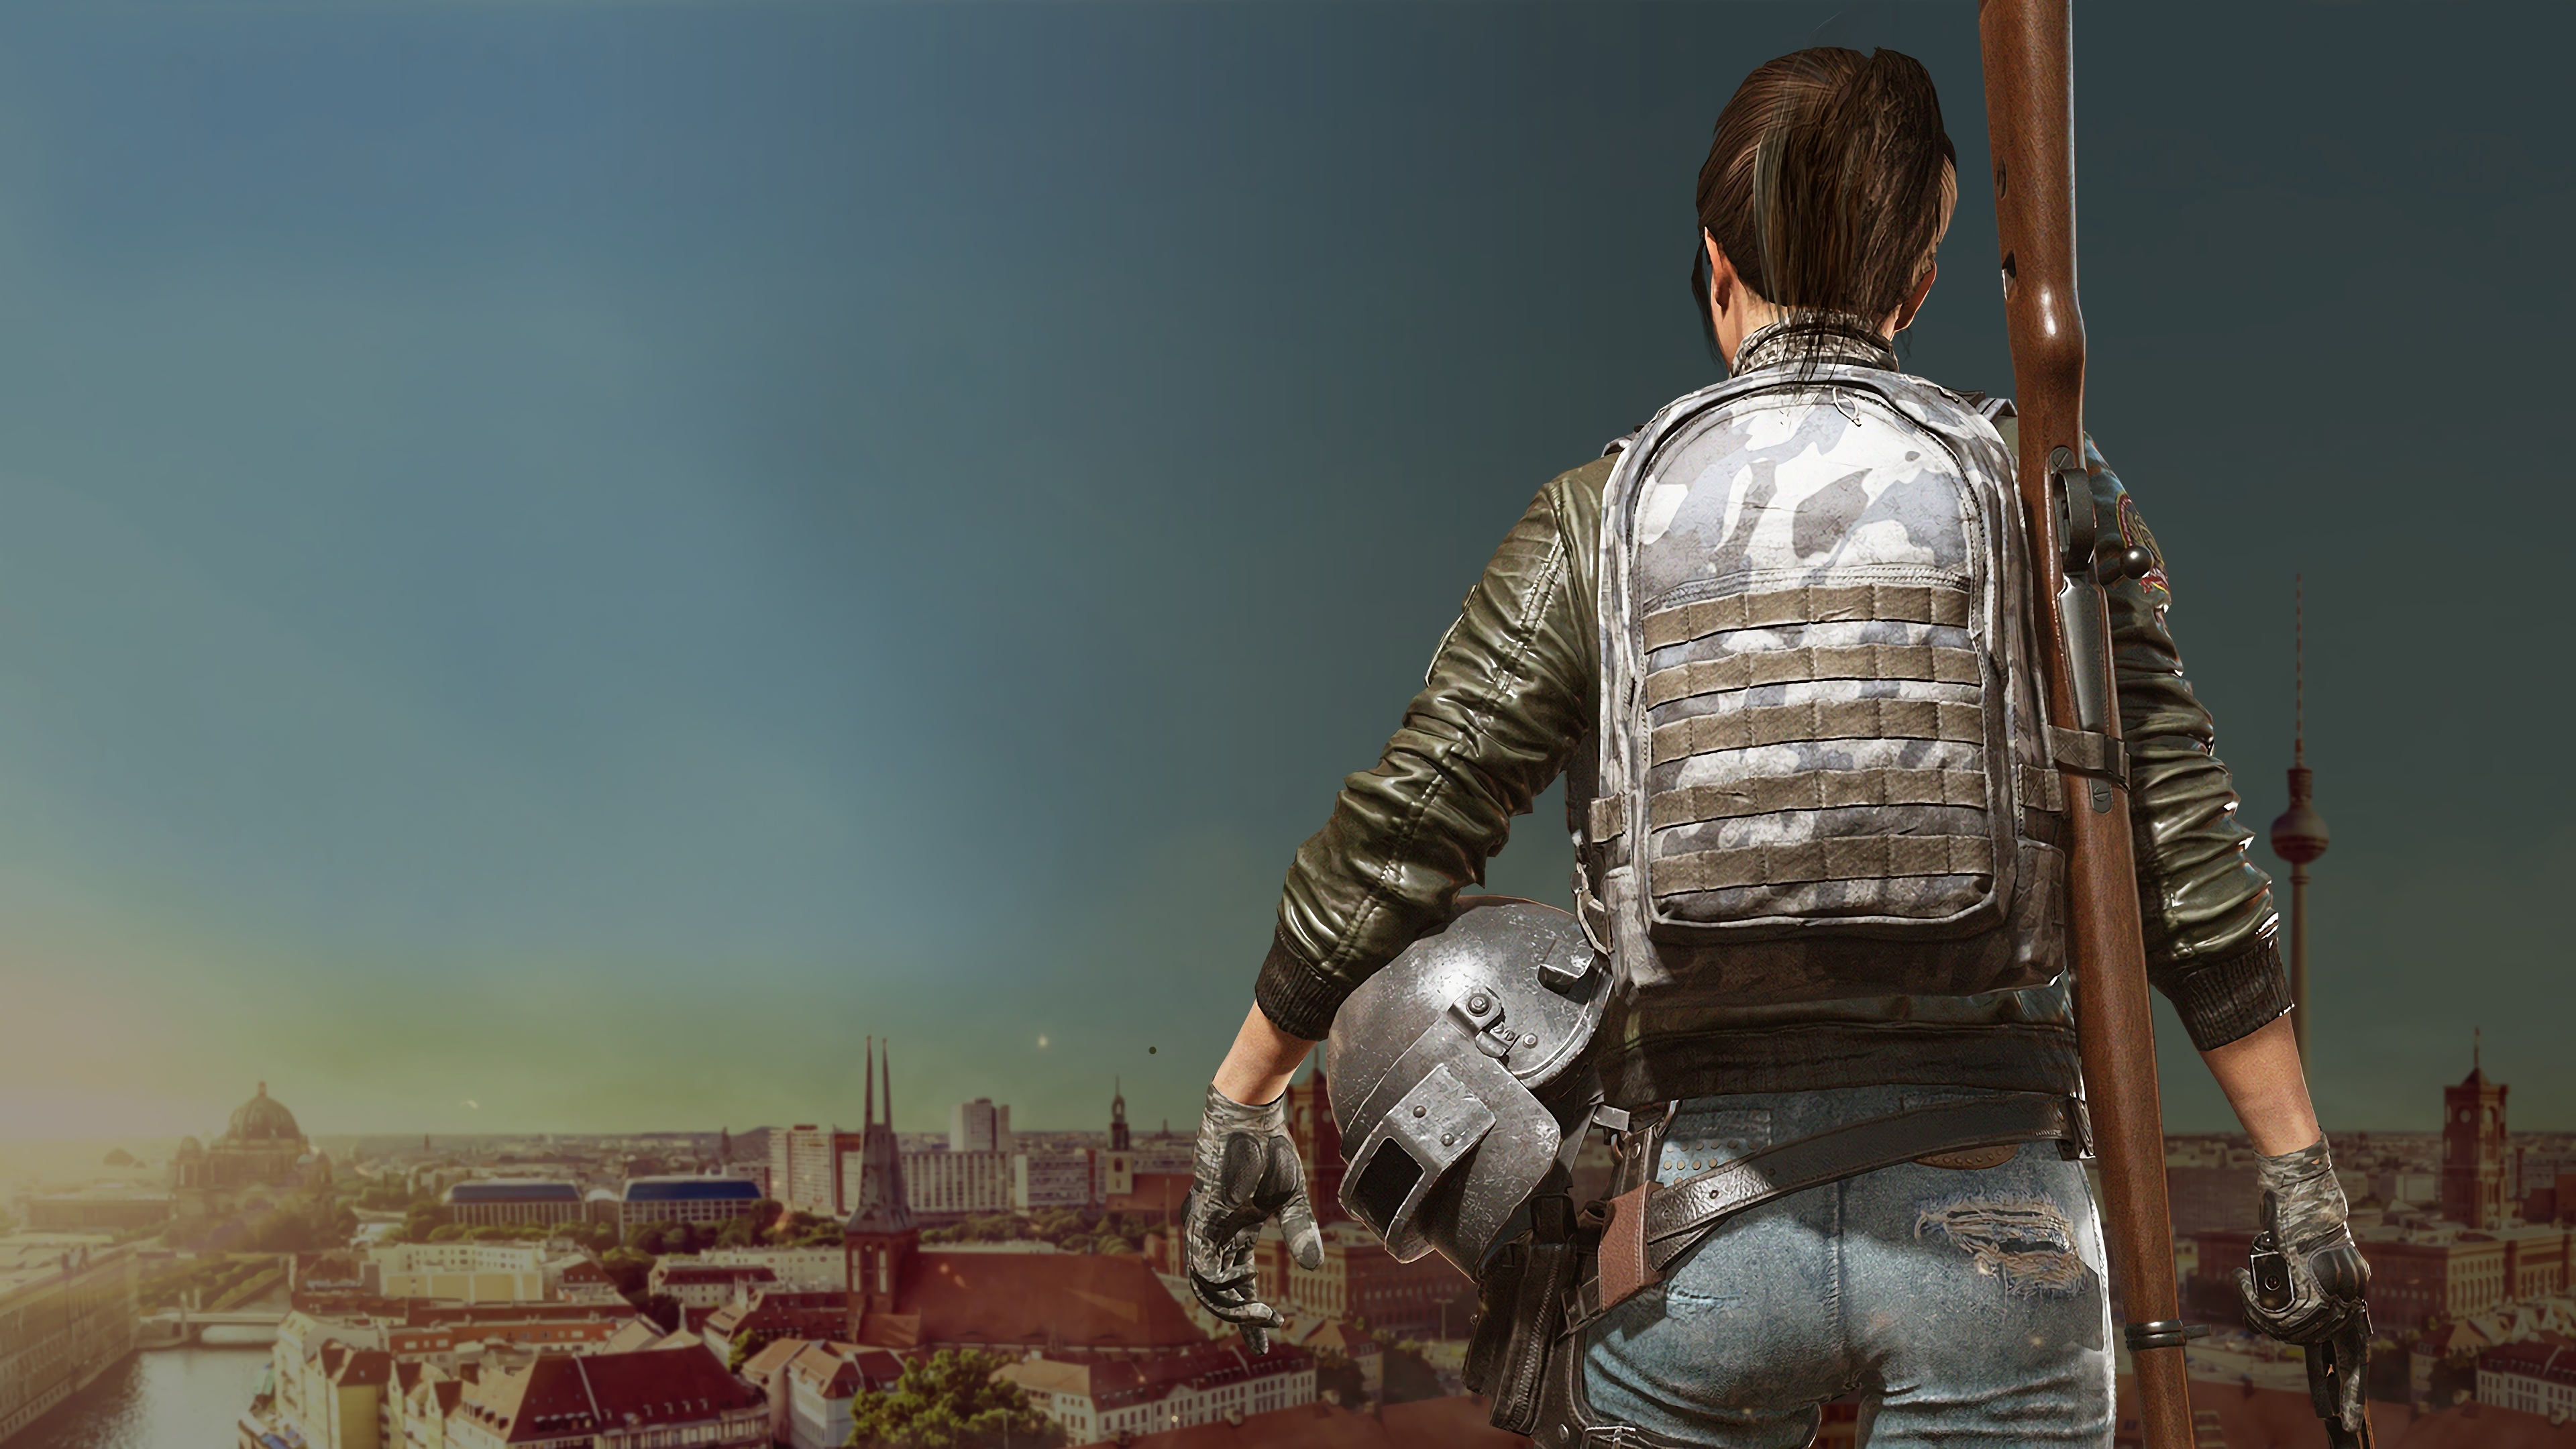 Pubg Wallpapers 4k Download: Game Girl Pubg 4k, HD Games, 4k Wallpapers, Images